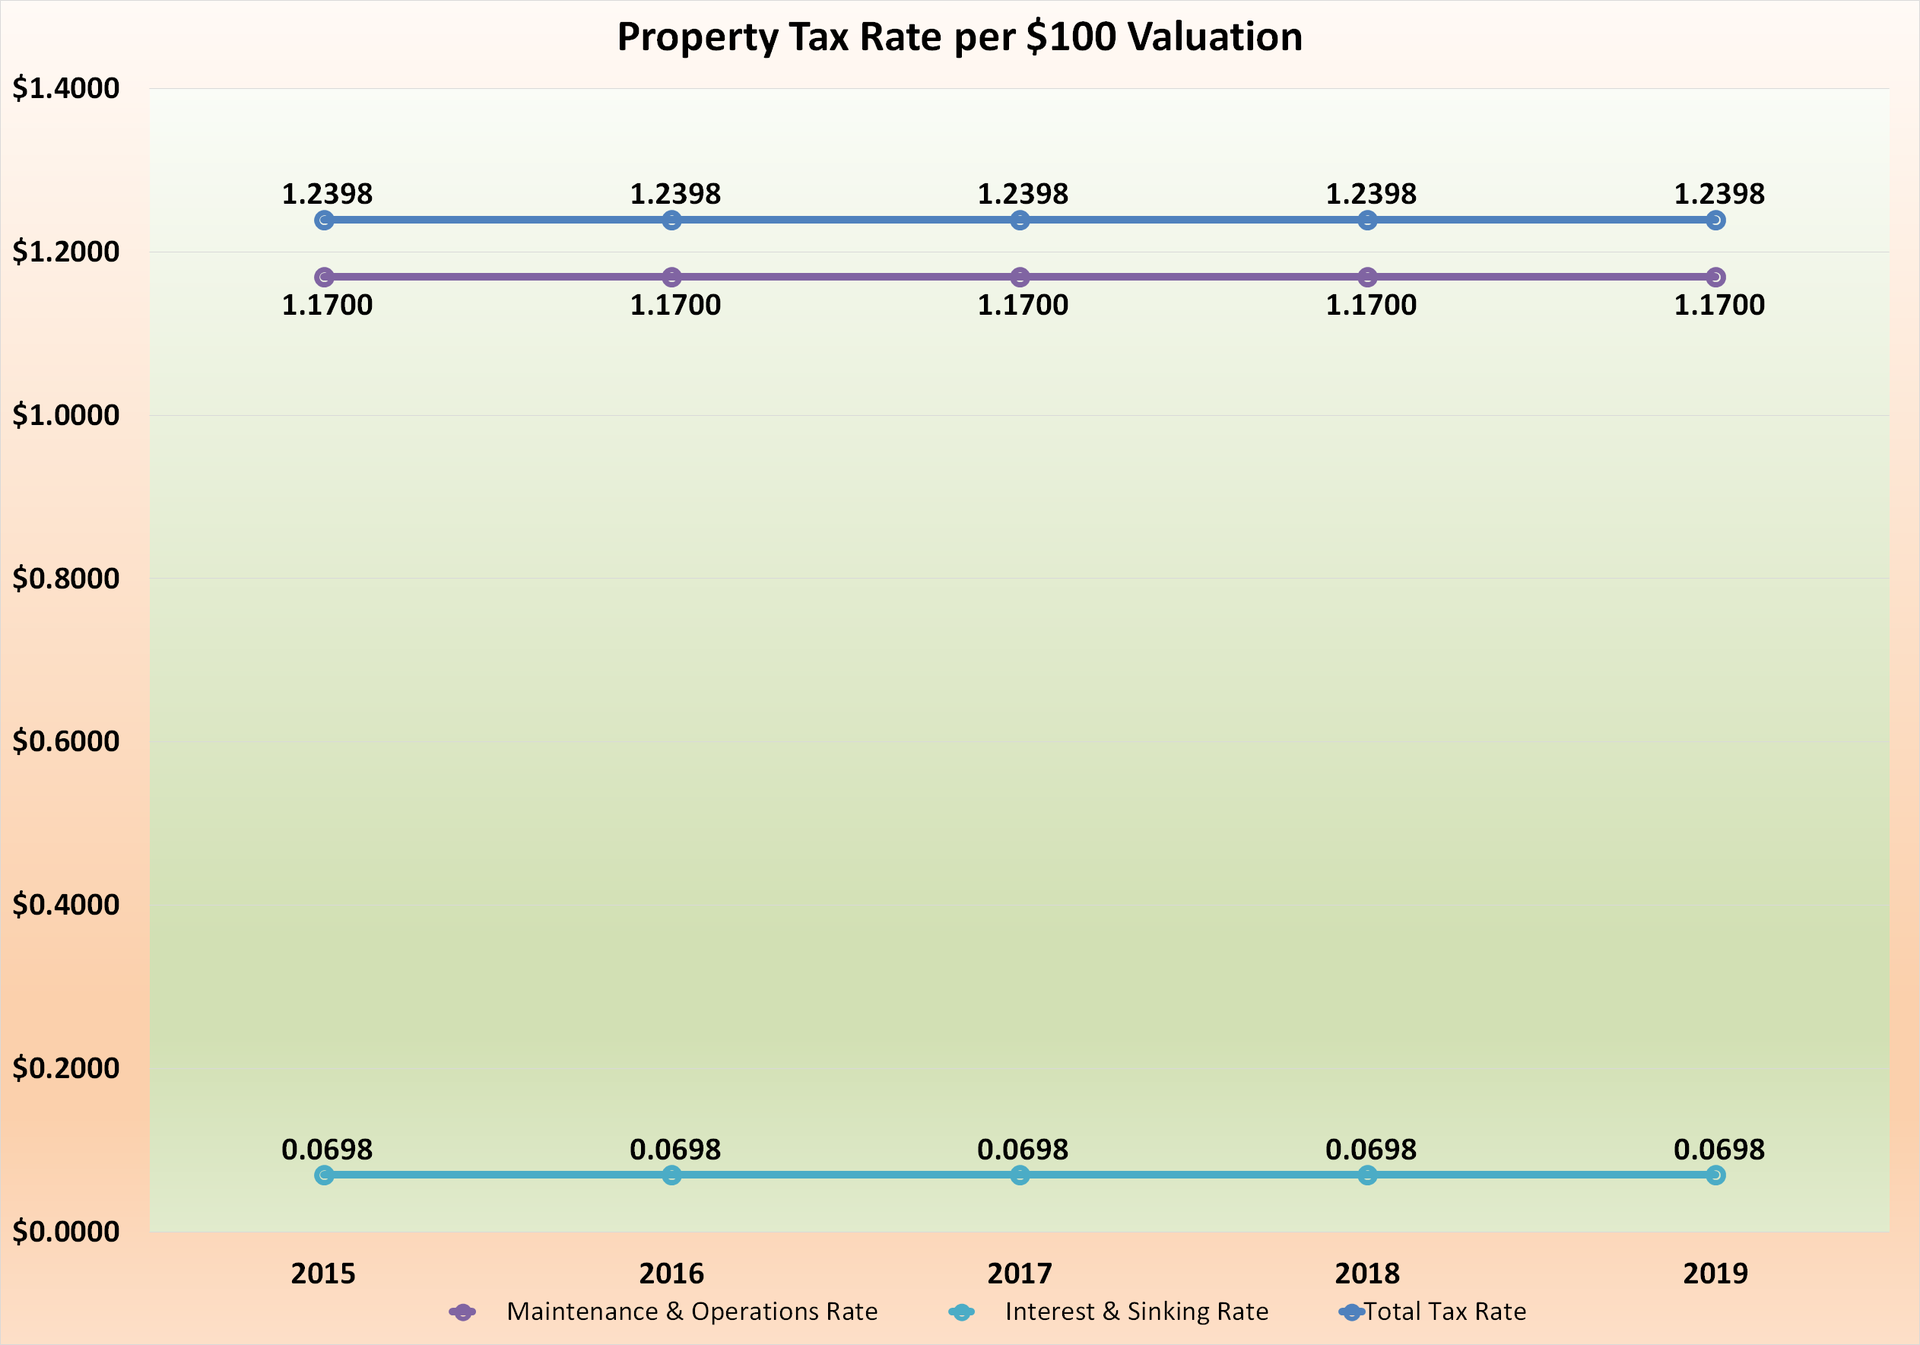 Property Tax Rate Per $100 Valuation